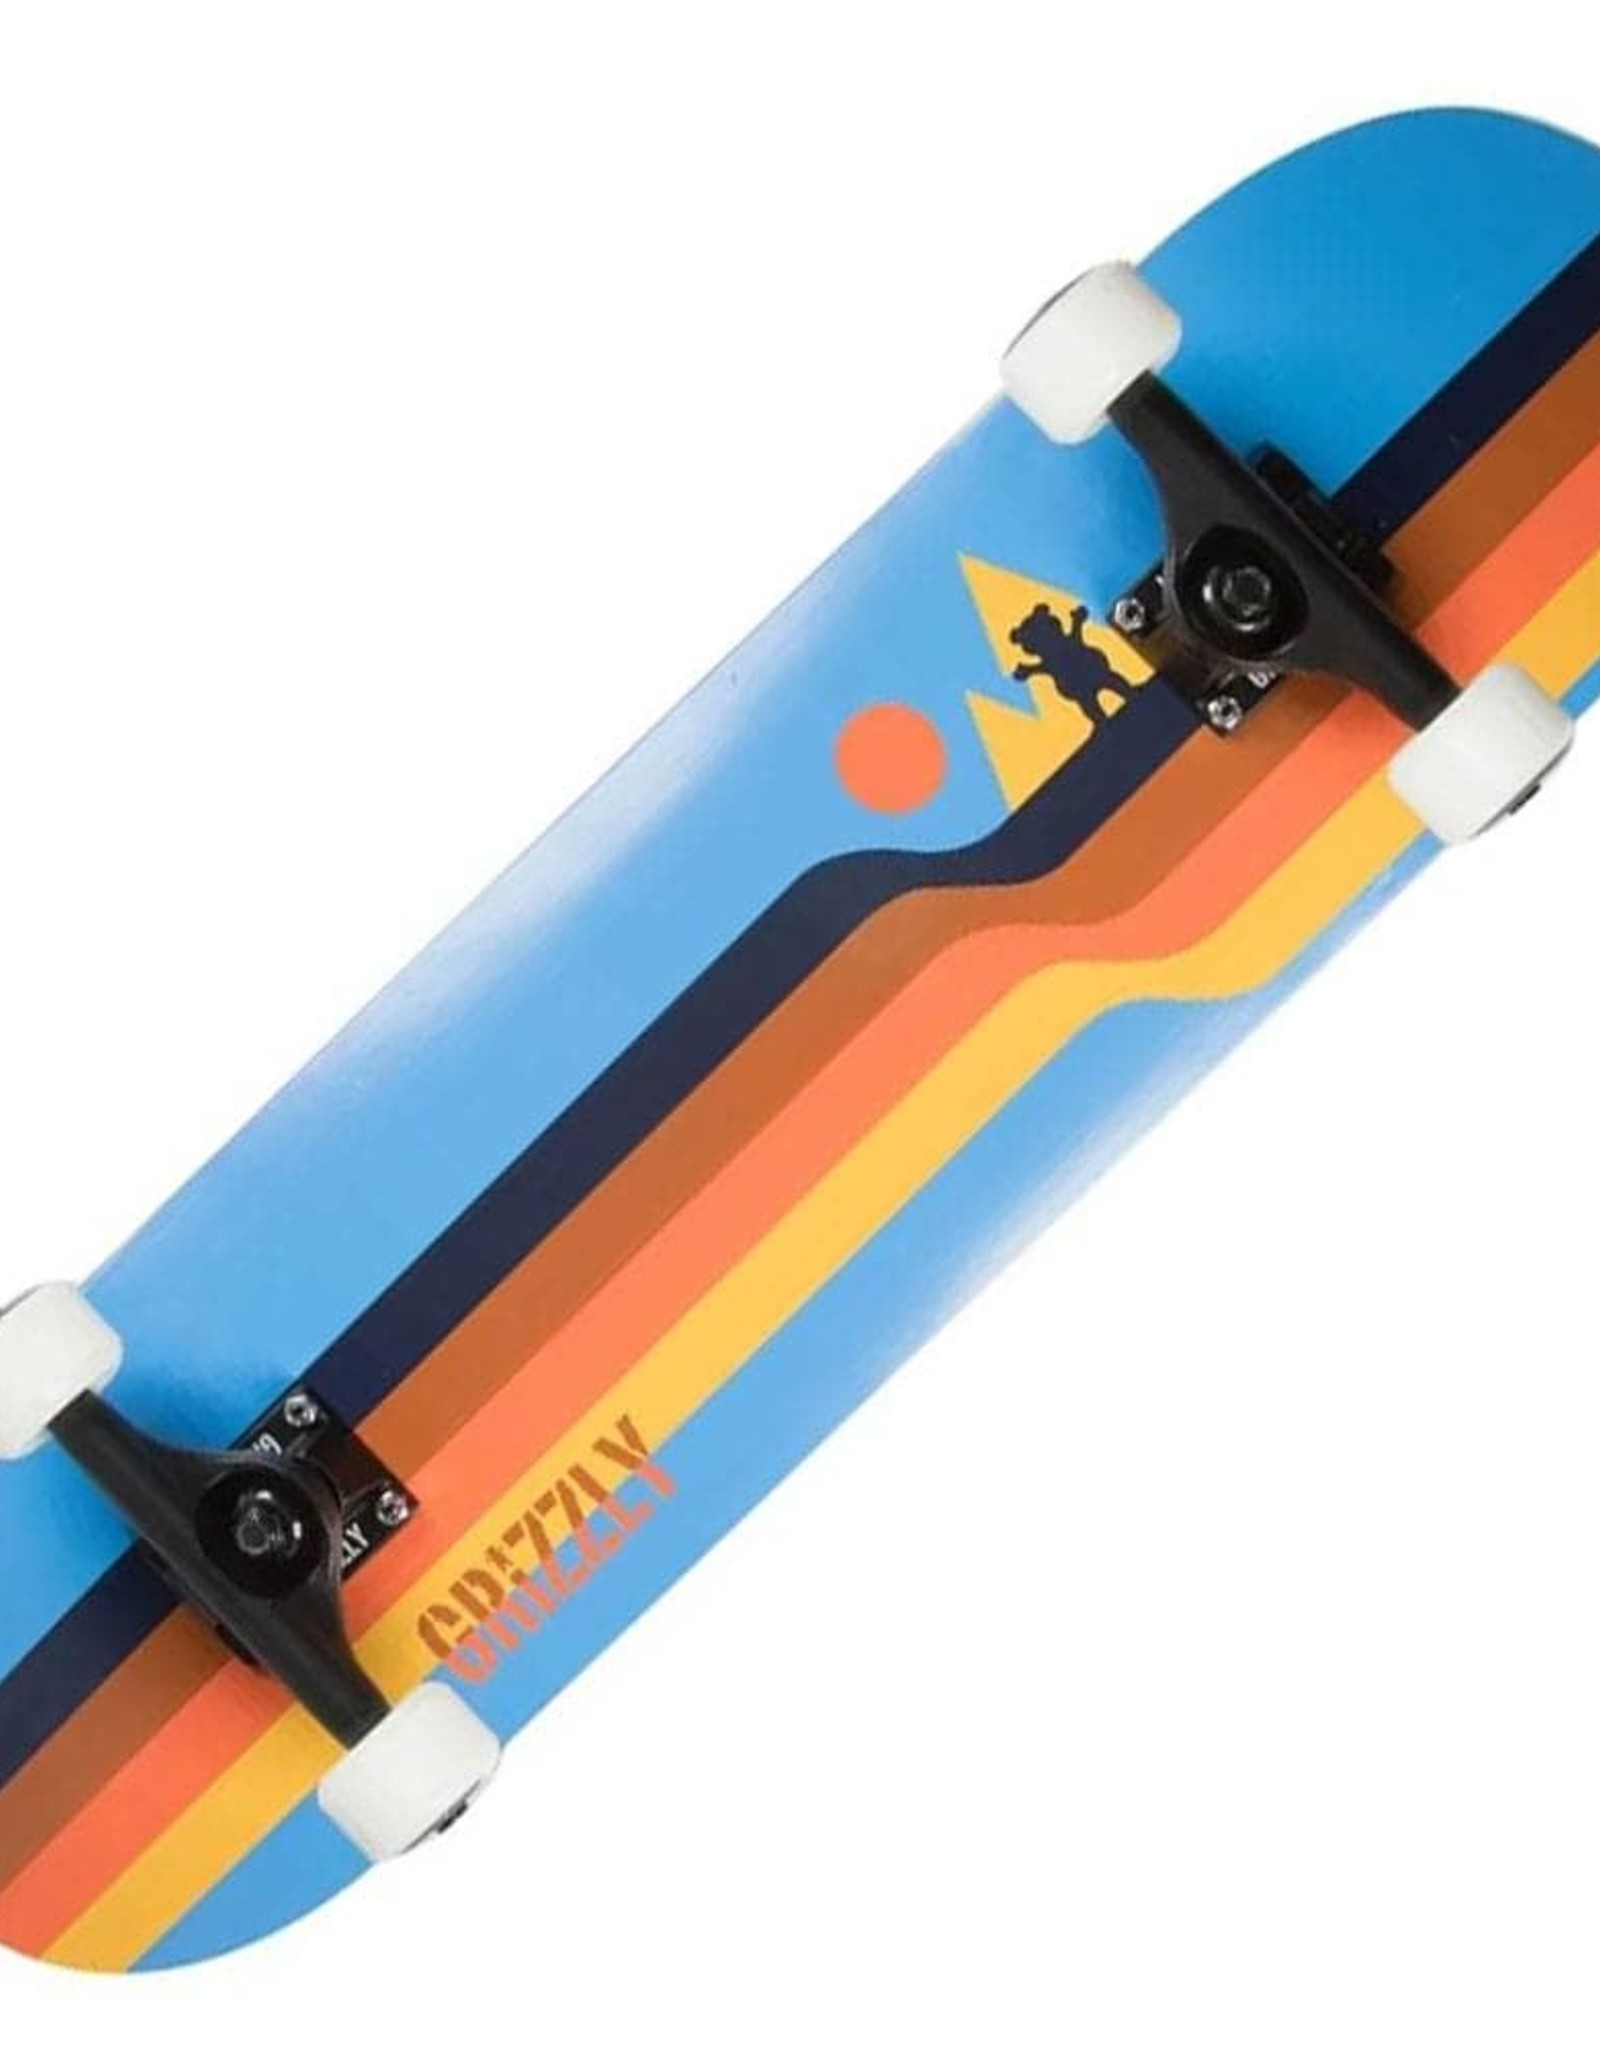 GRIZZLY GRIZZLY COMPLETE RETRO LINES 7.88